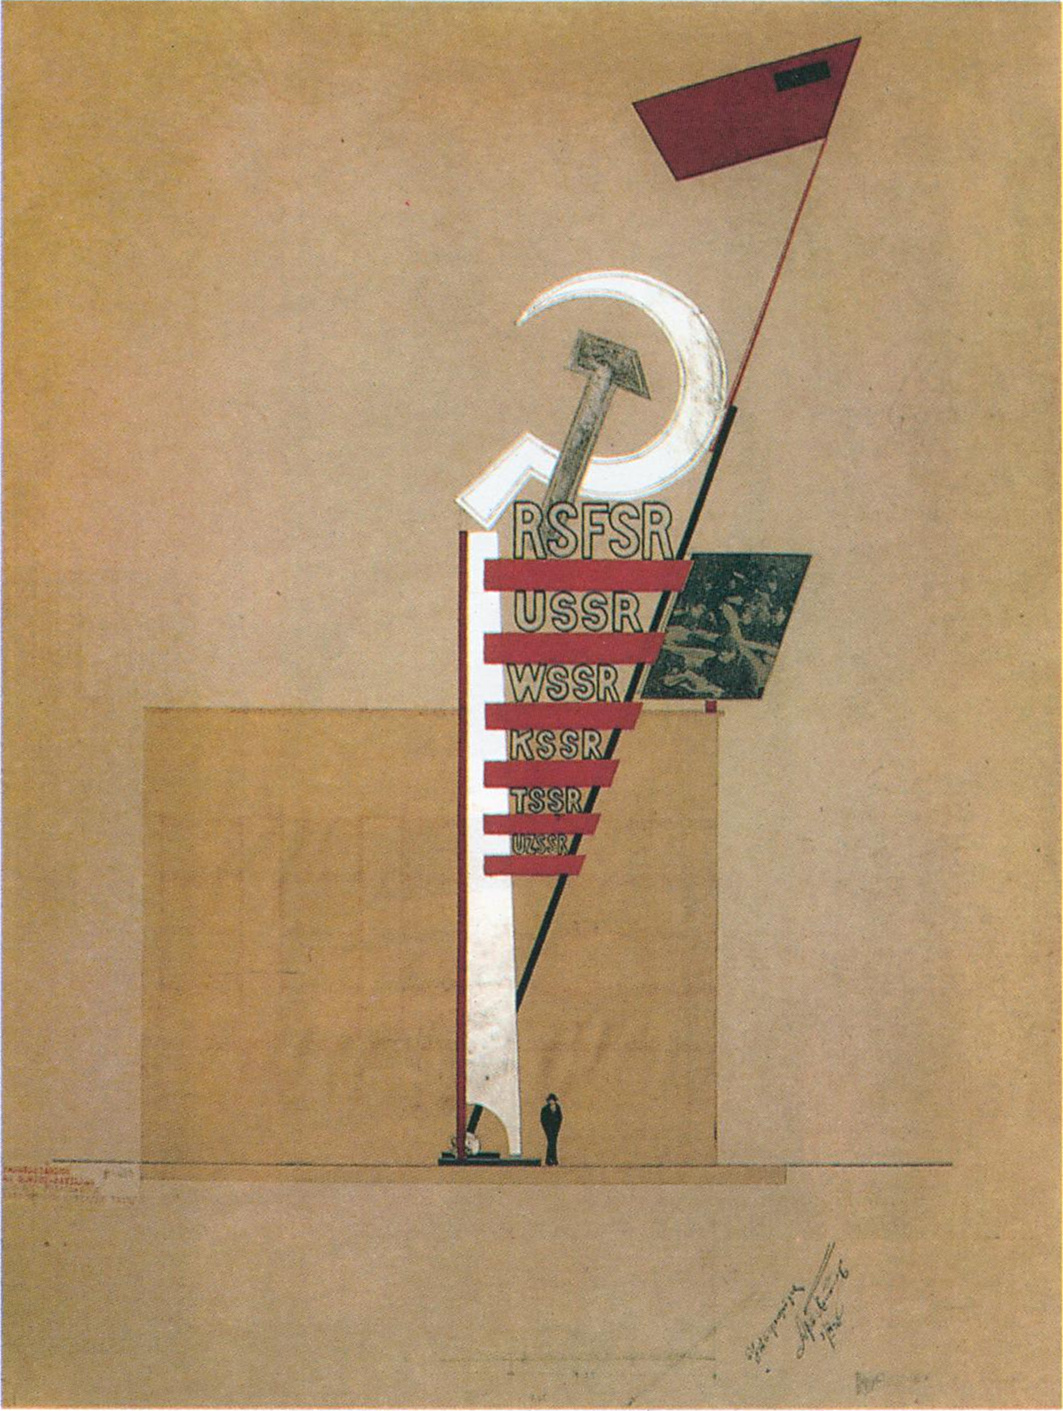 El Lissitzky, flag station design for the Pressa exhibit in Cologne1